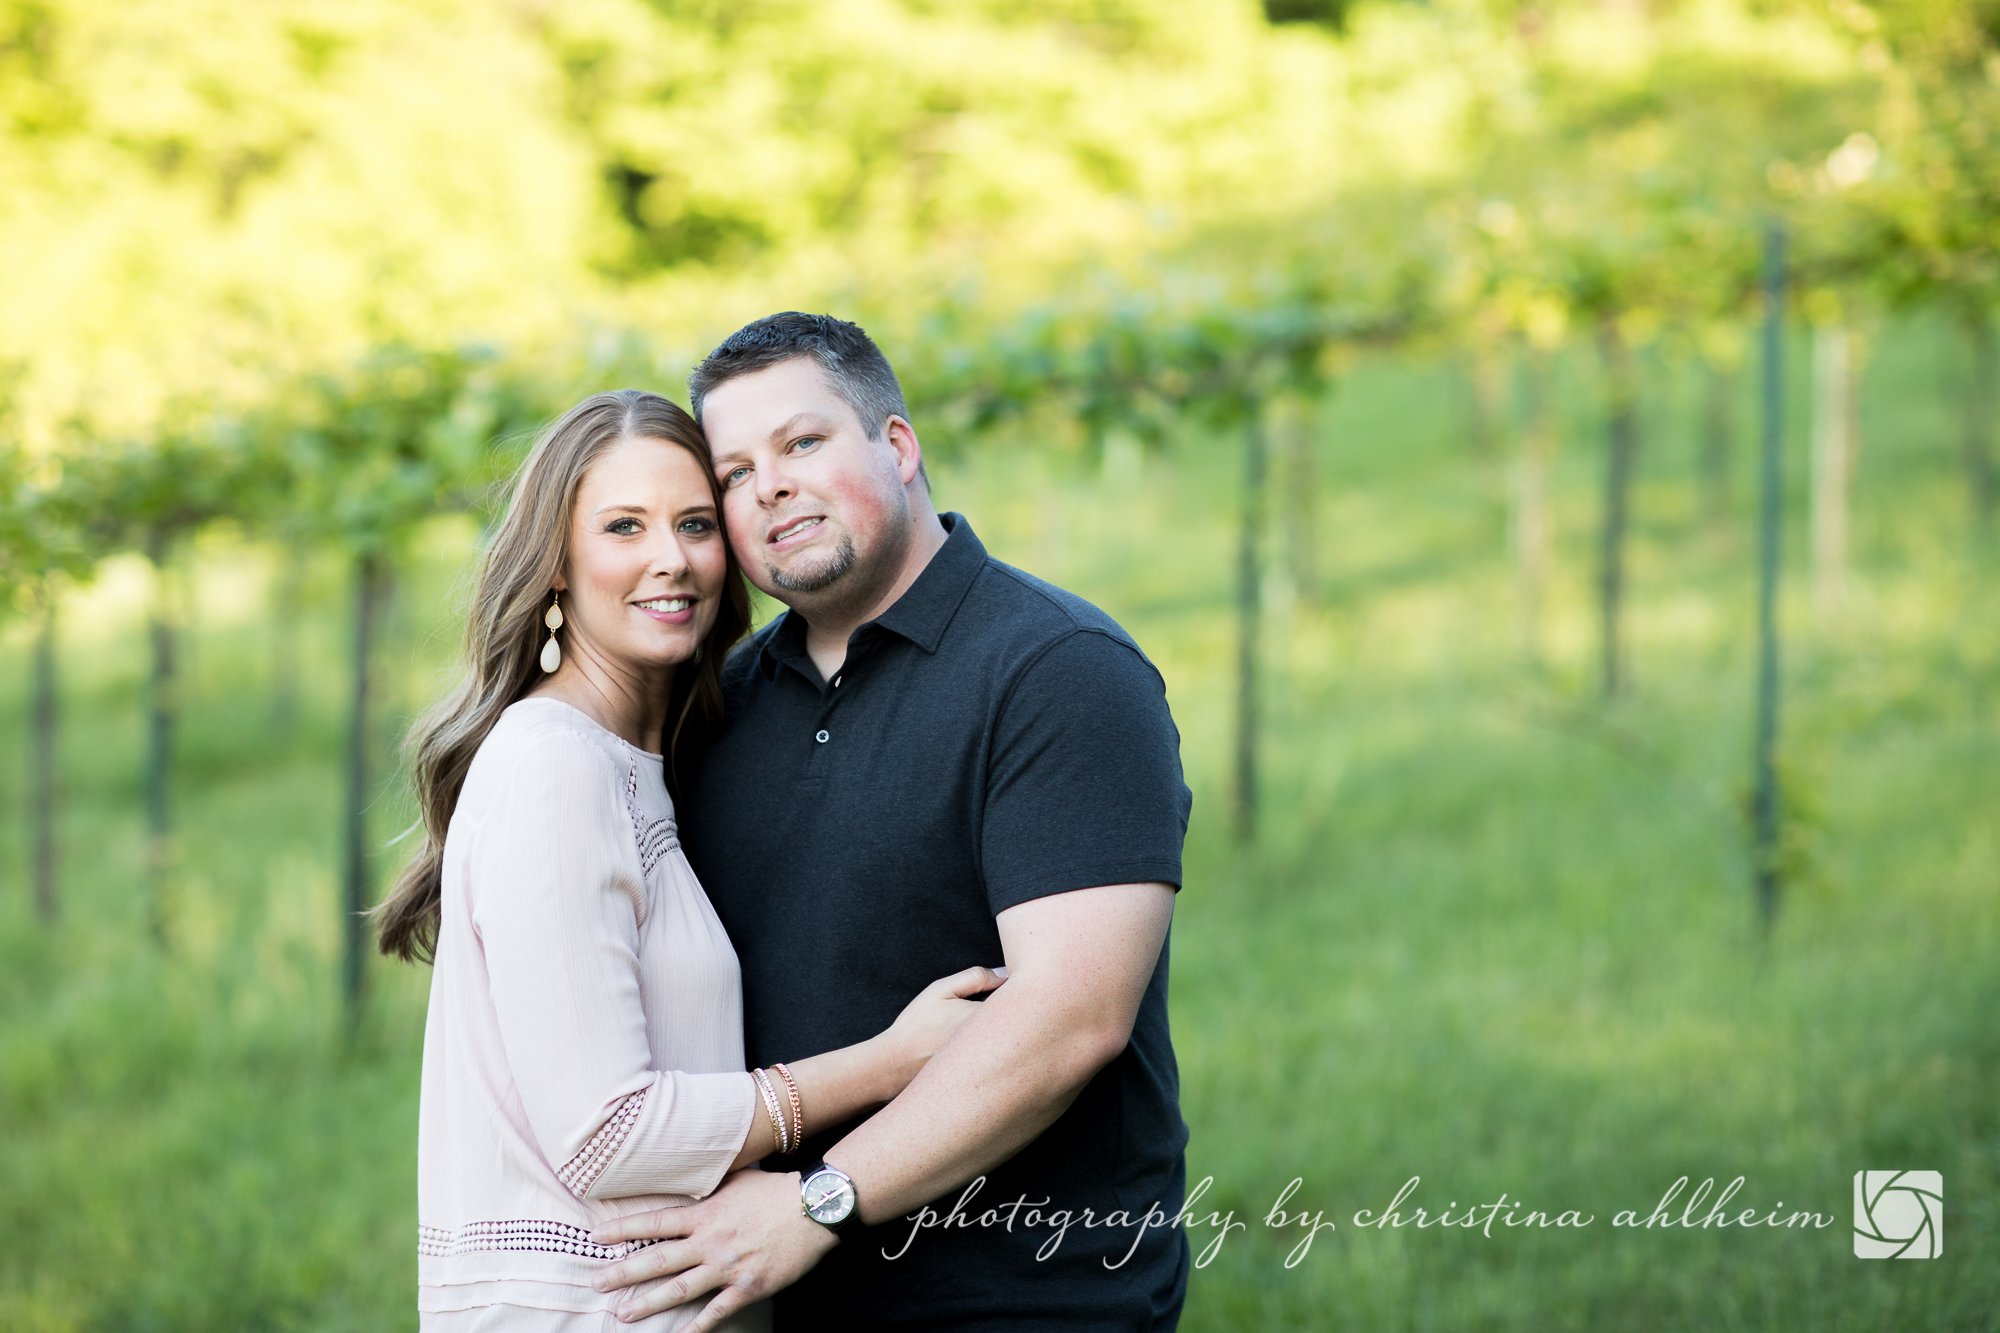 Shannon + Paul | Engaged